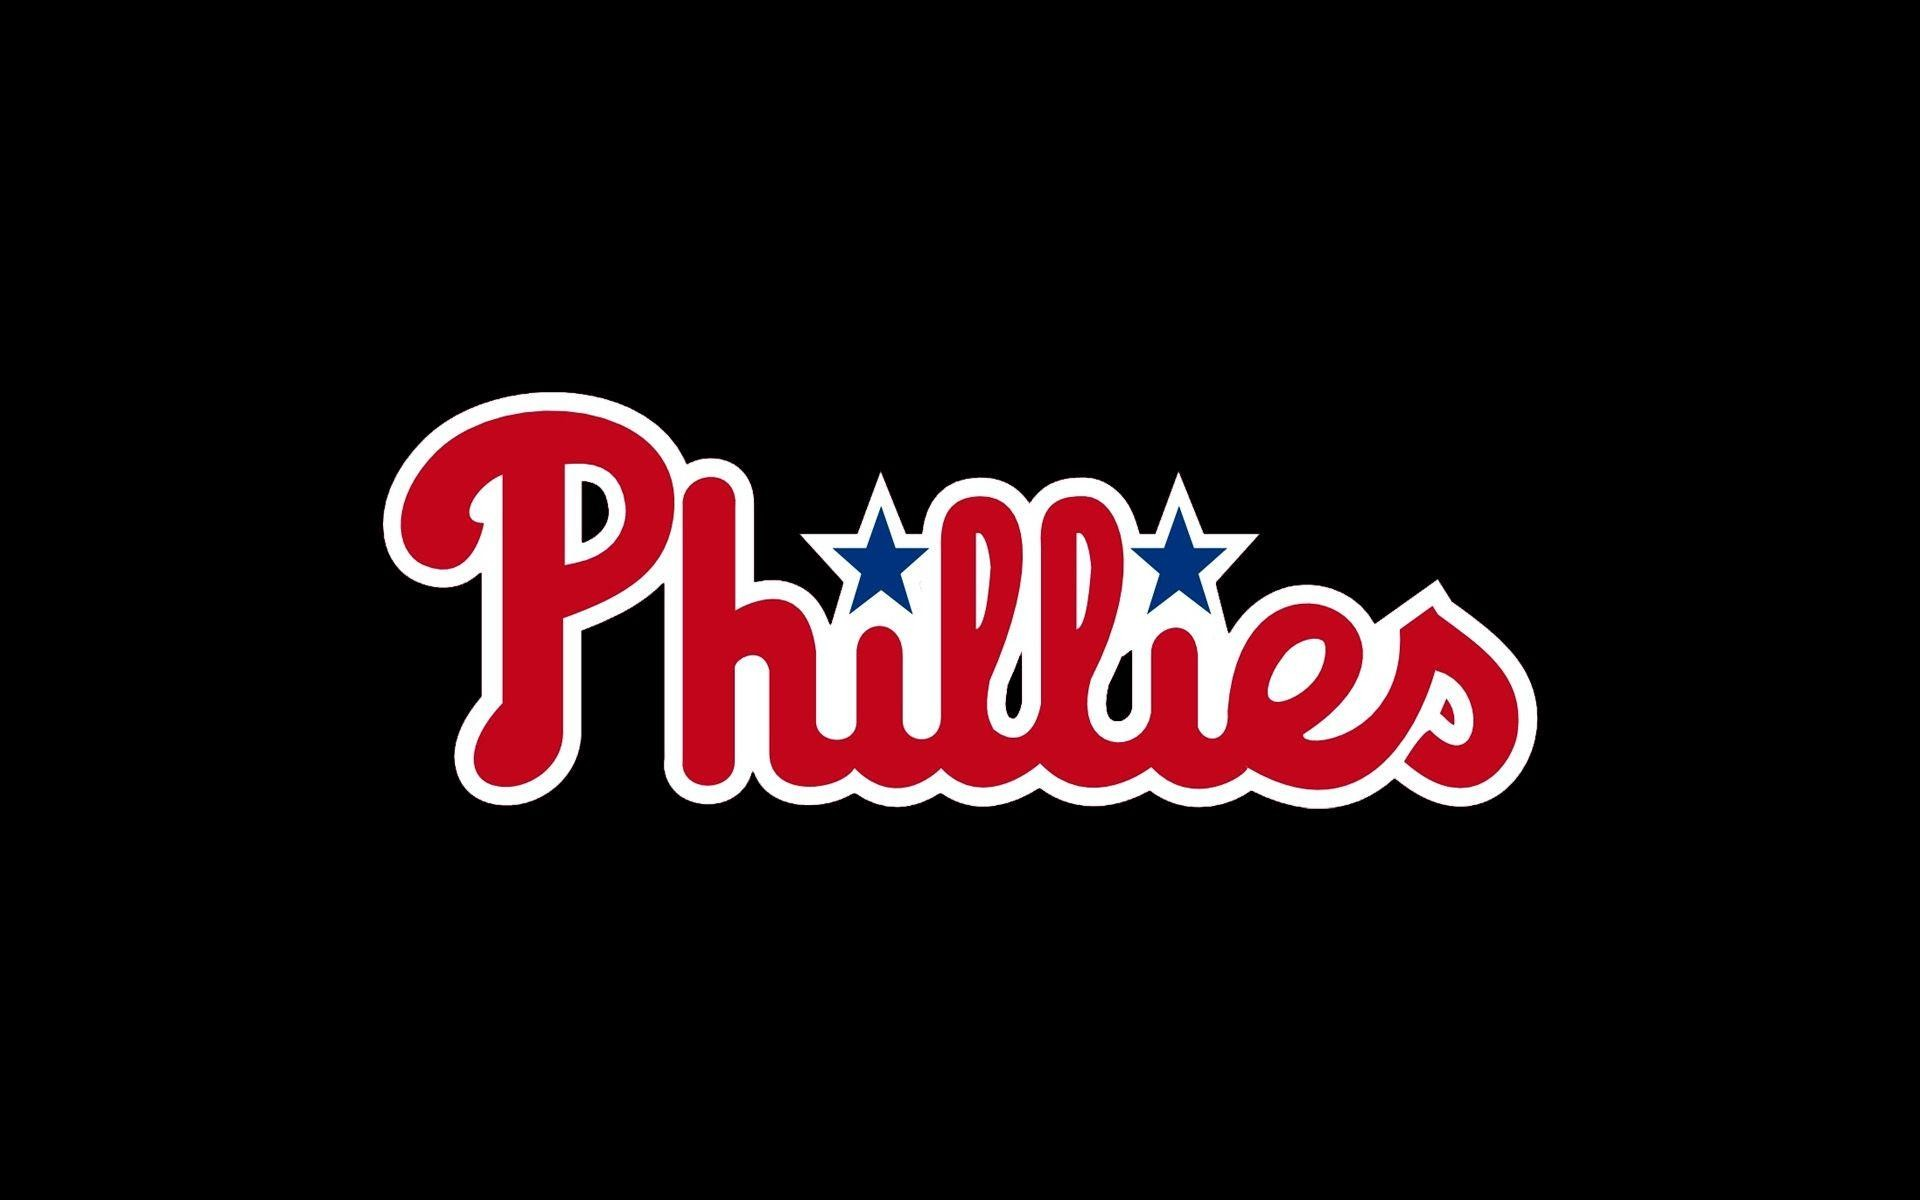 Phillies Logo Wallpaper 1